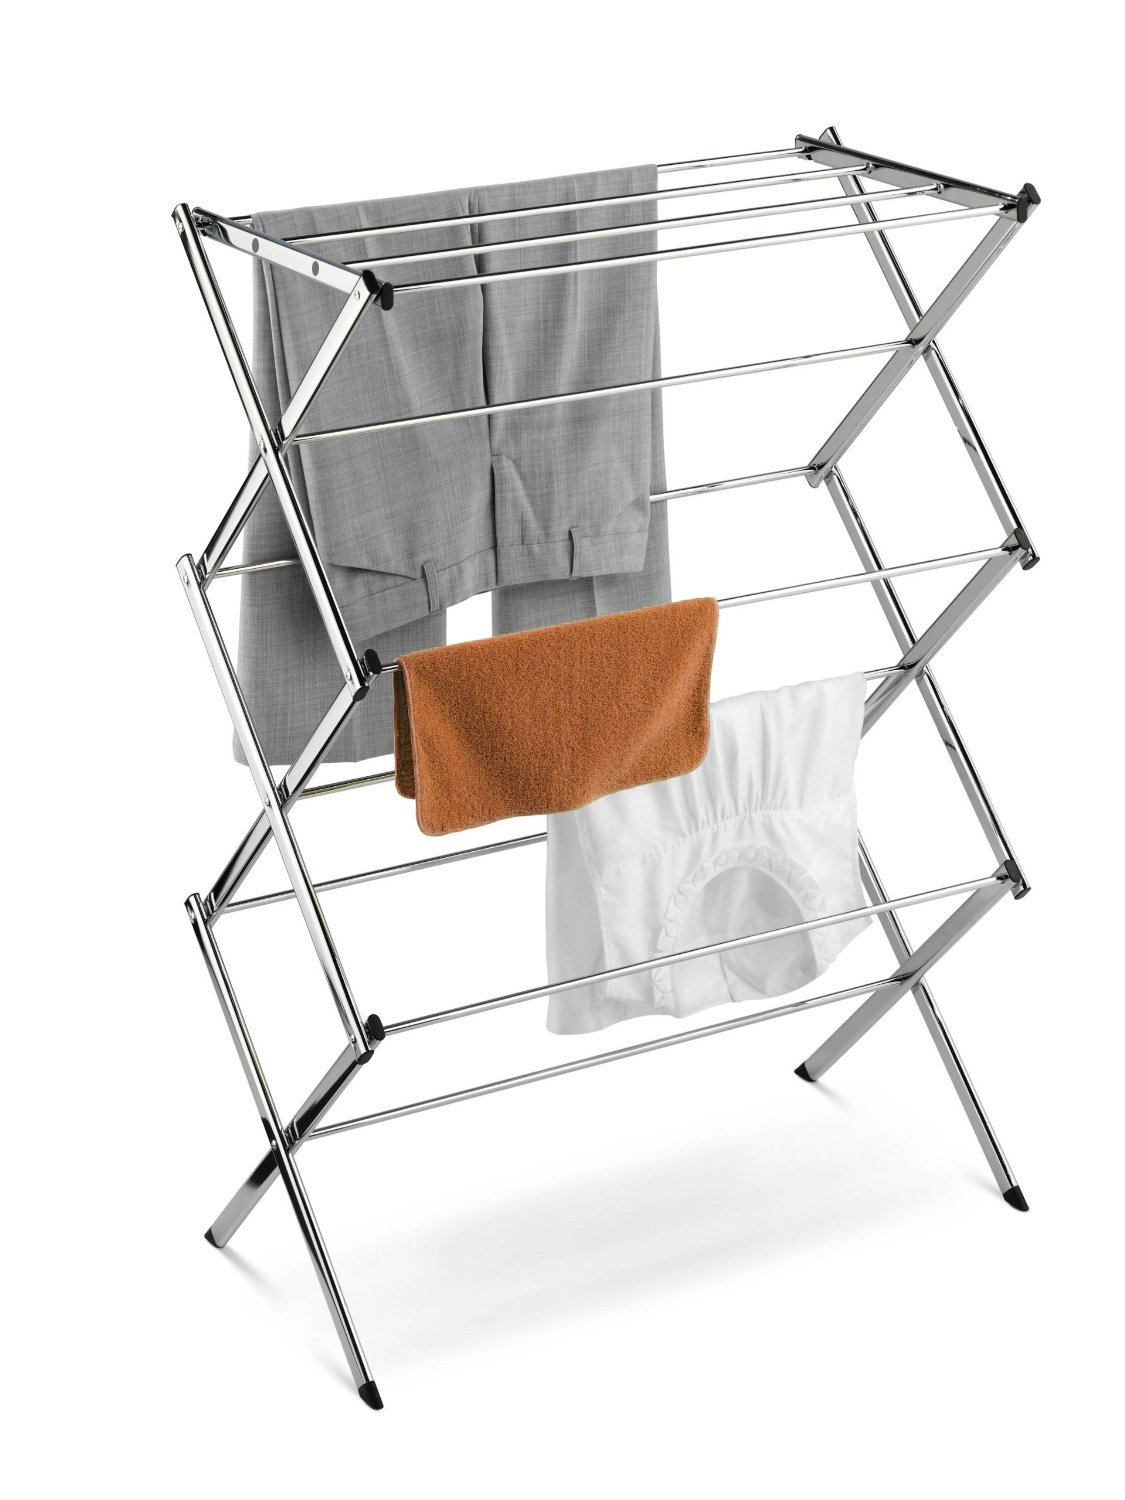 Clothes drying rack for small spaces - Laundry drying racks for small spaces property ...